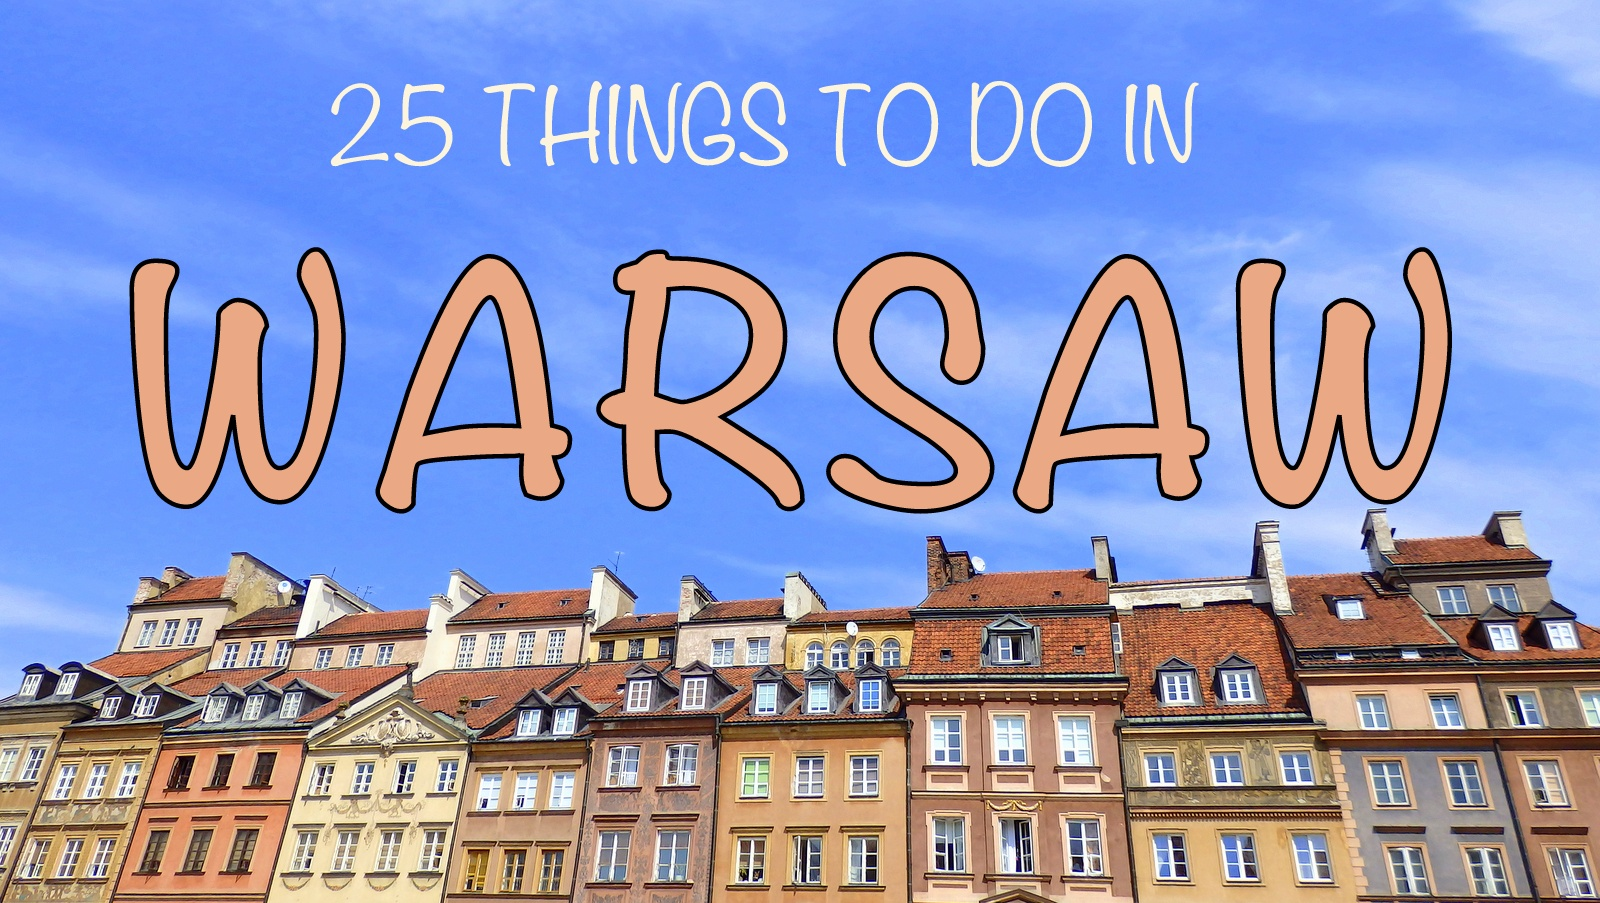 25 Things to do in Warsaw Travel Guide